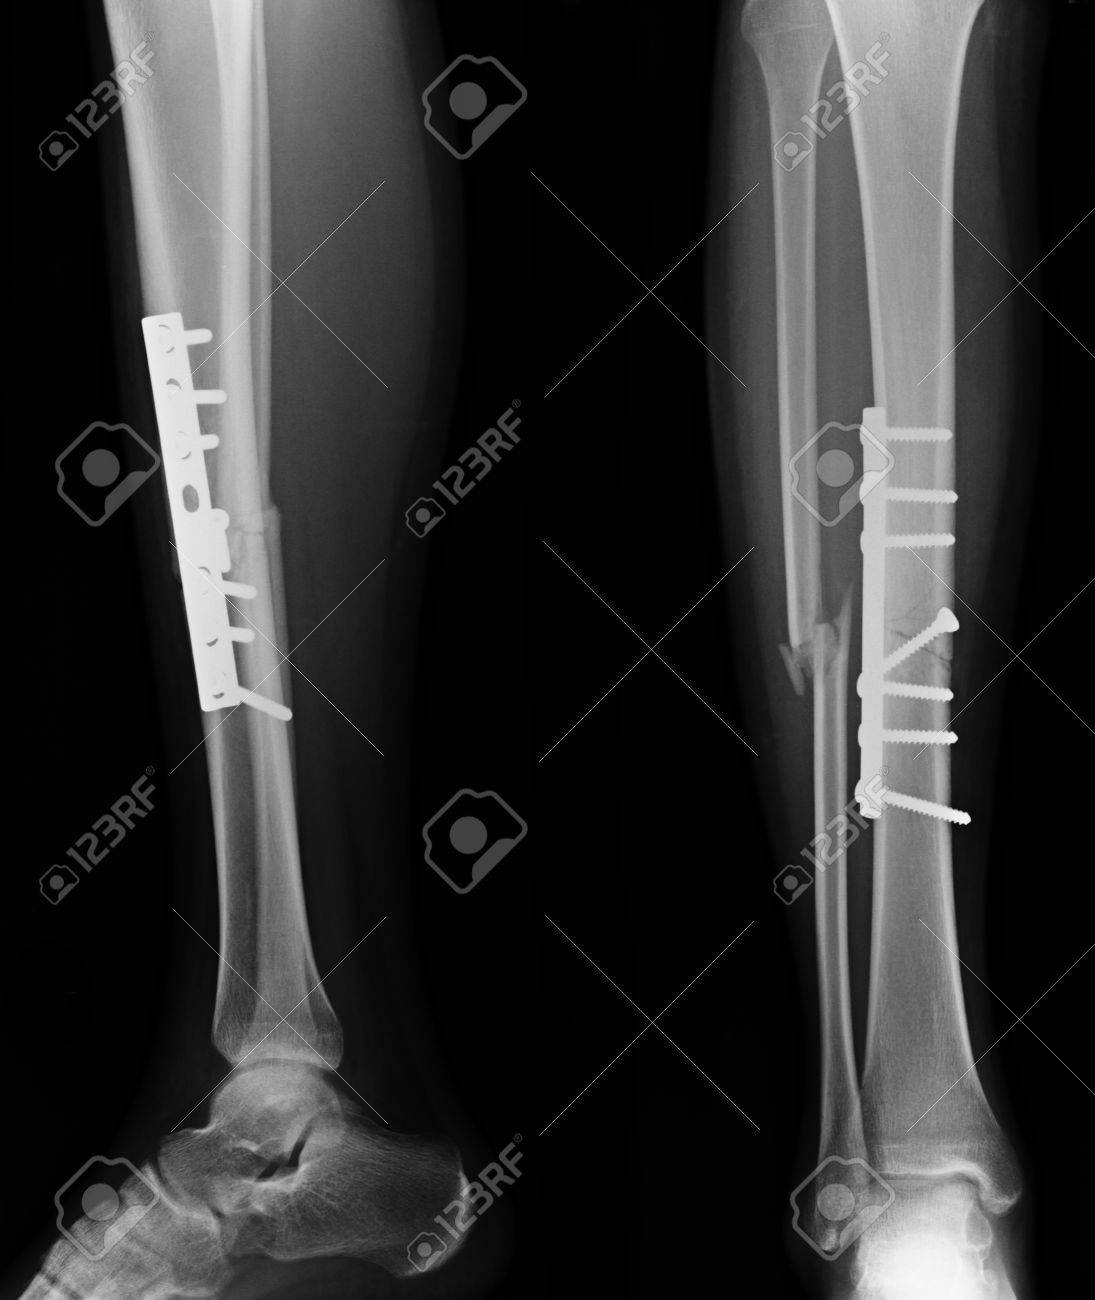 X Rays Image Of Leg Fracture Patients Stock Photo Picture And